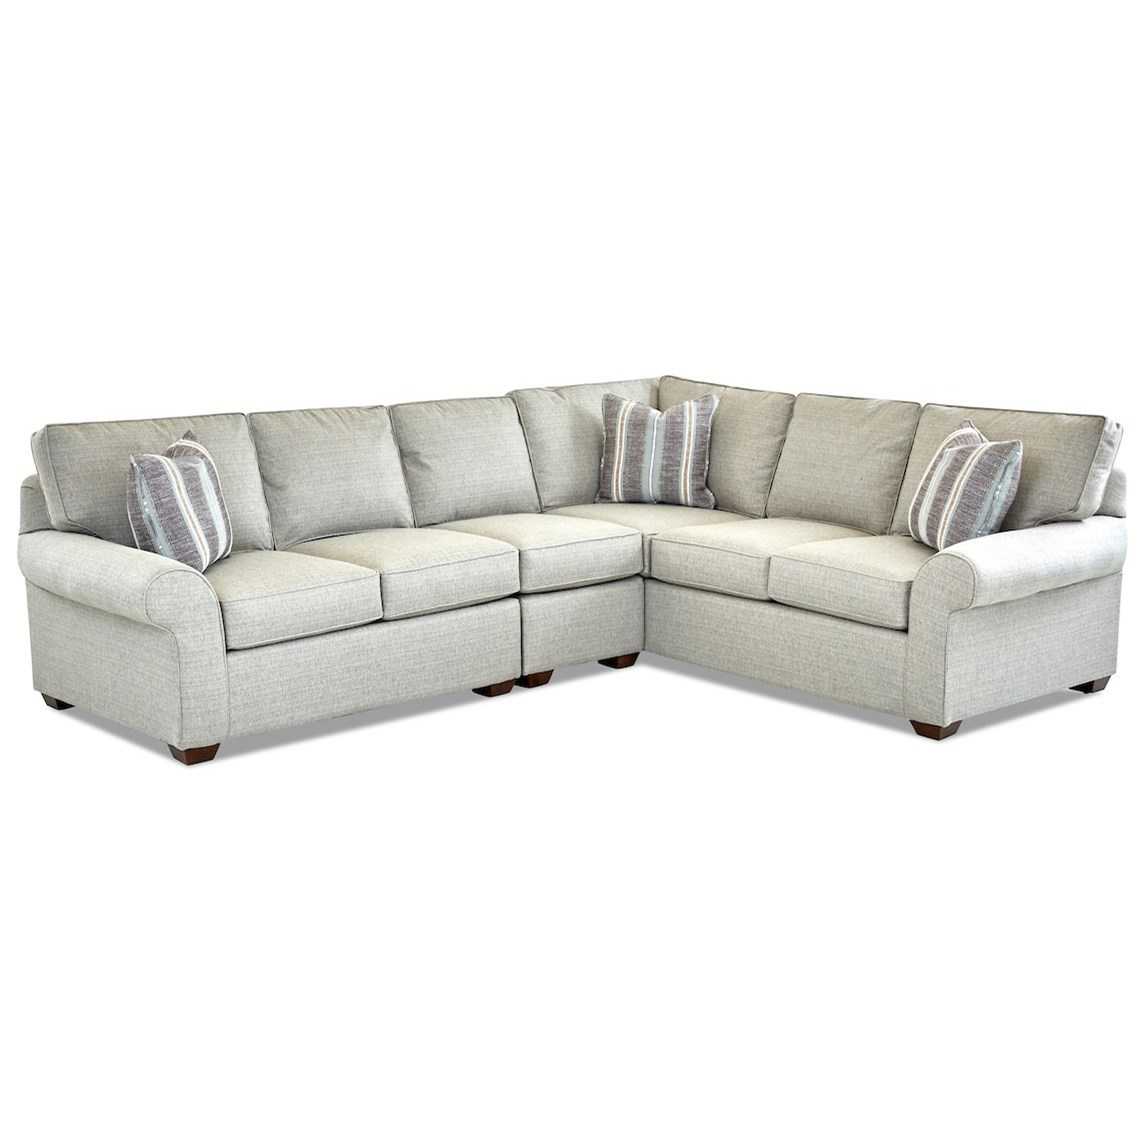 Casual 3 Piece Sectional Sofa with LAF Loveseat